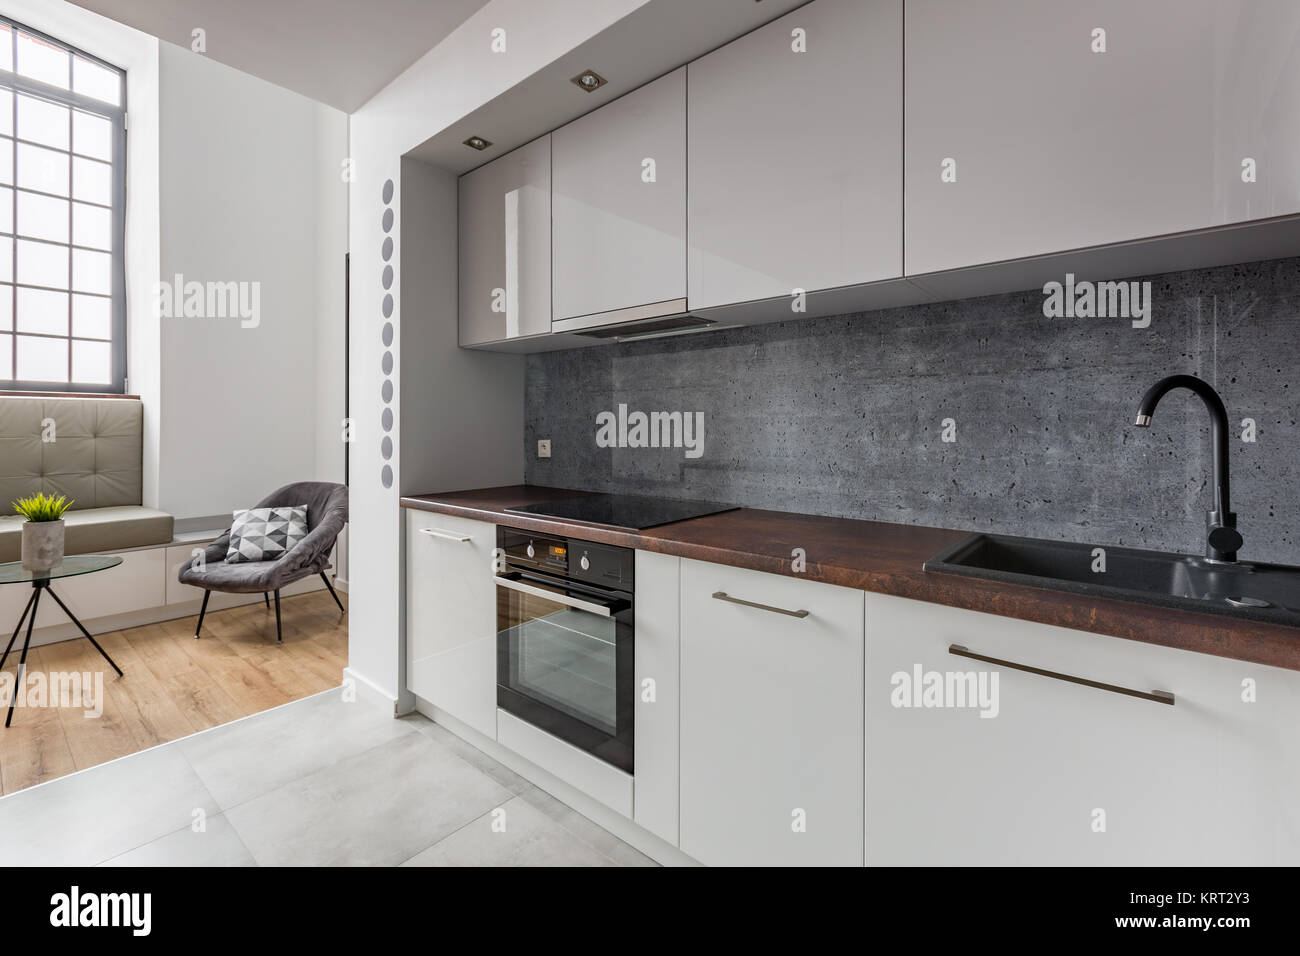 moderne k che mit sp le und arbeitsplatte aus granit schwarz stockfoto bild 169559575 alamy. Black Bedroom Furniture Sets. Home Design Ideas